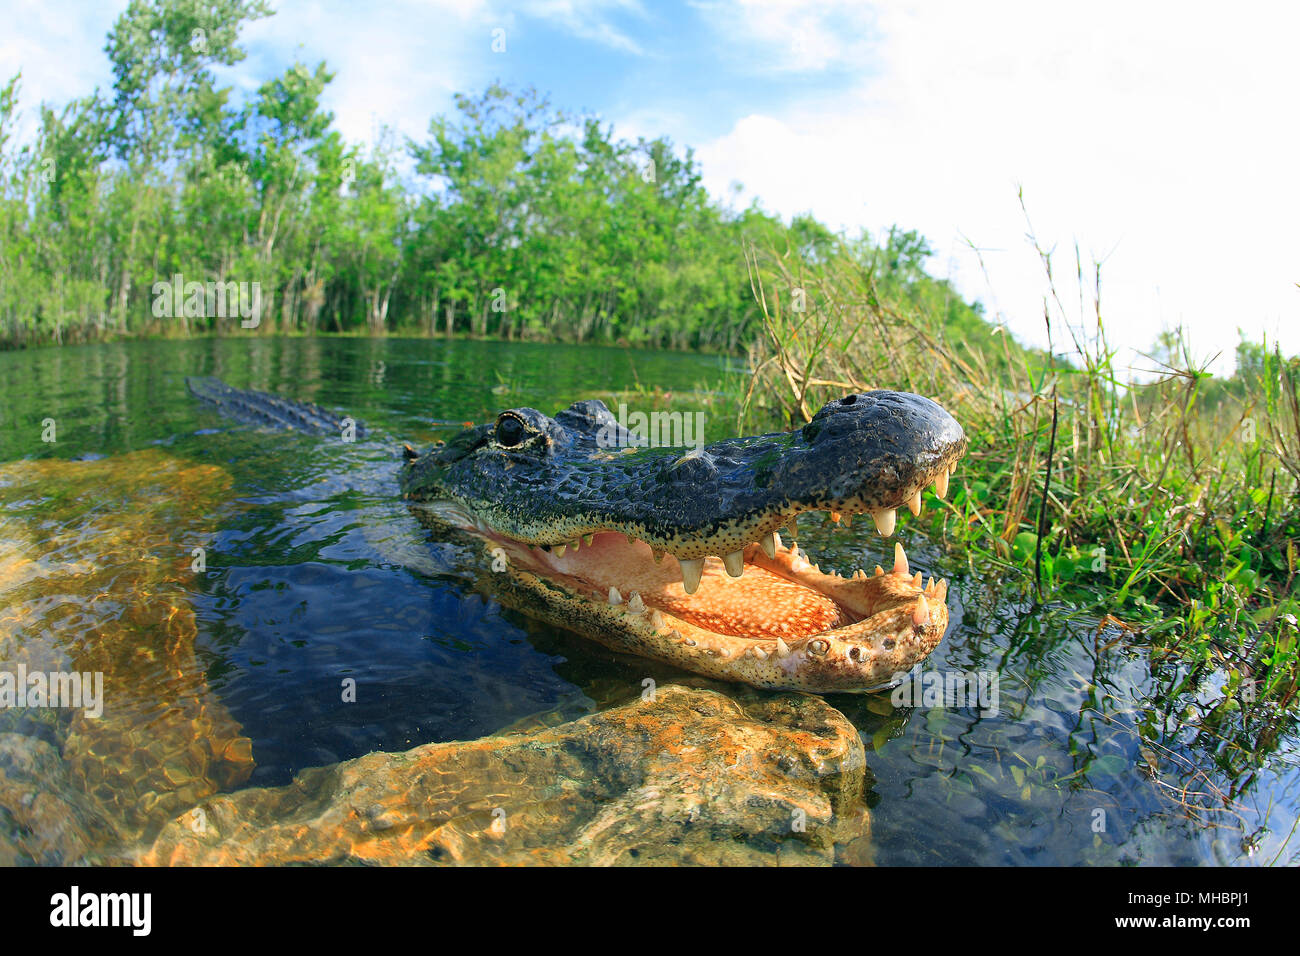 American alligator (Alligator mississippiensis), in the water, open mouth, animal portrait, Everglades, Florida, USA - Stock Image